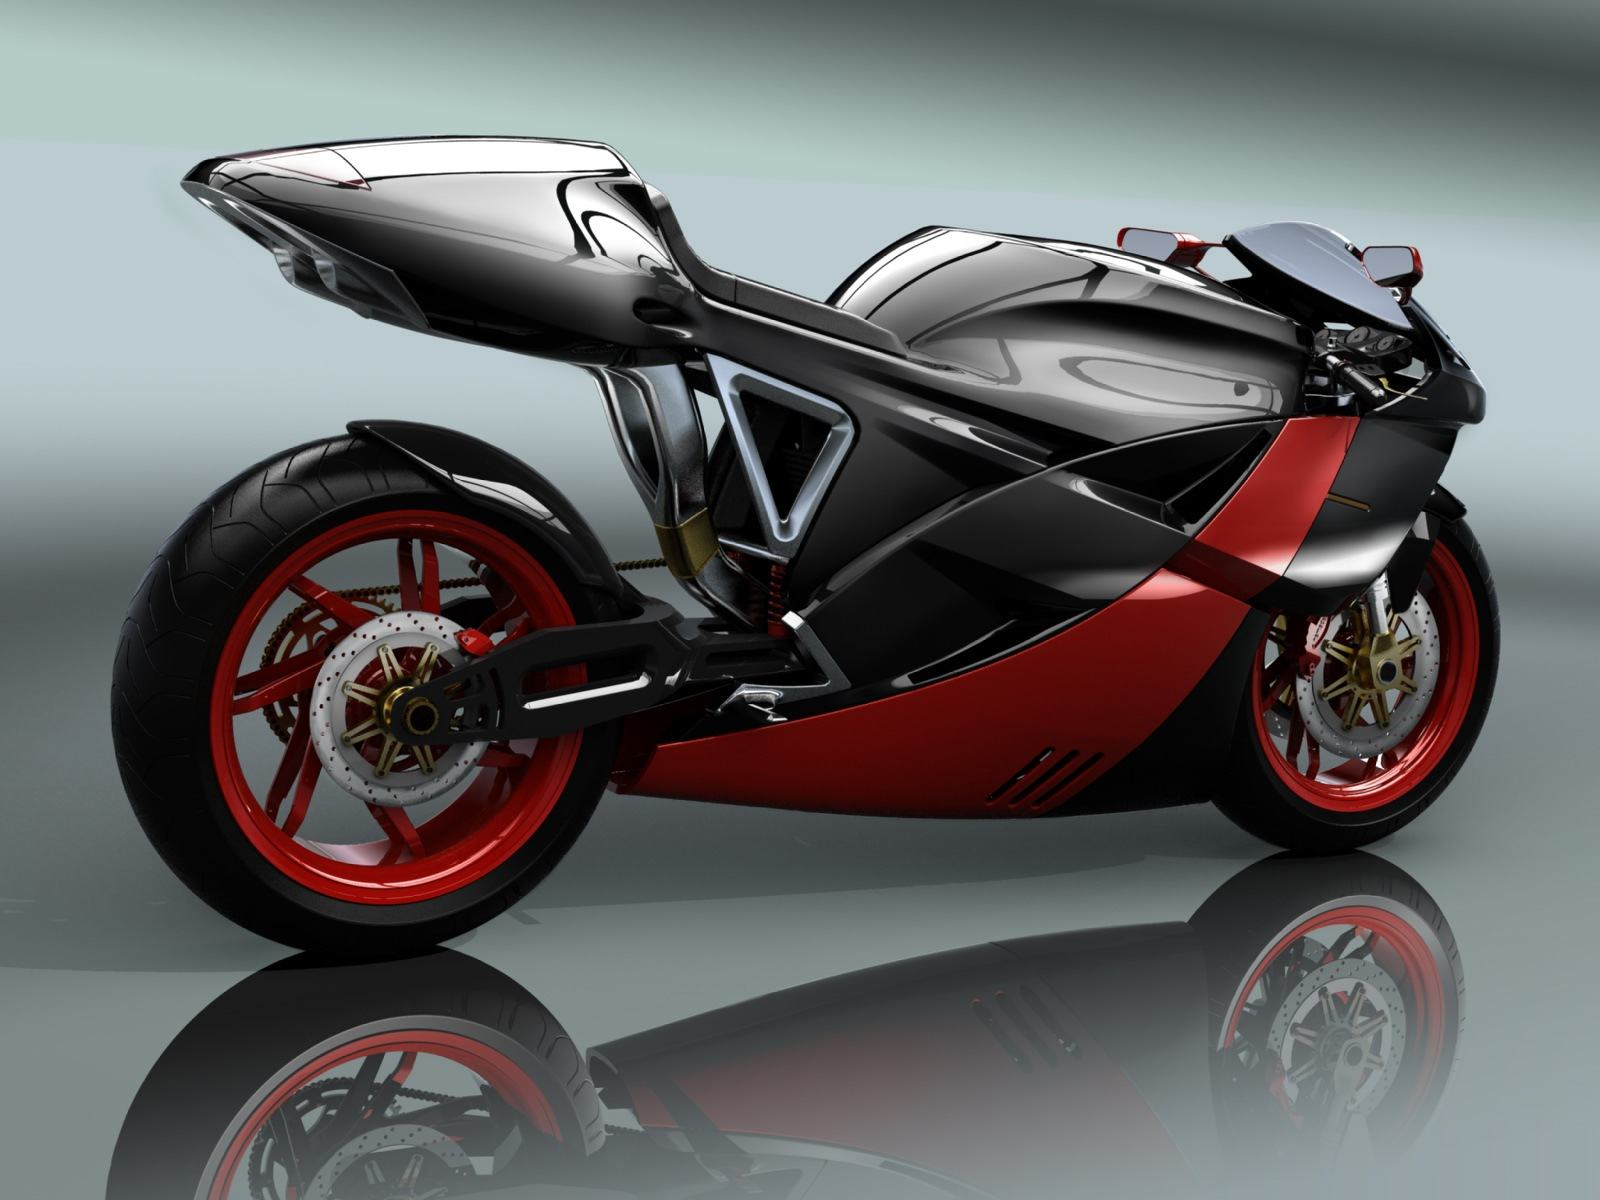 HD Wallpapers Of Cars And Bikes Free Download